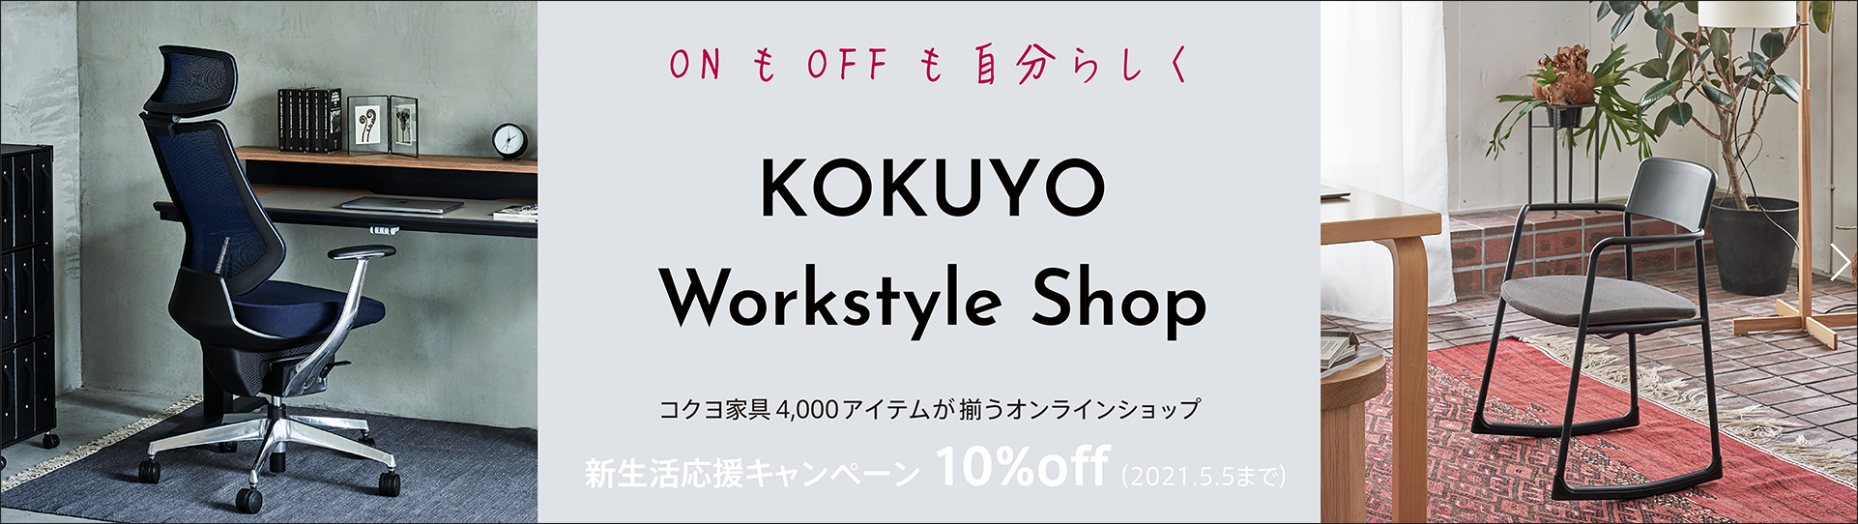 WorkstyleShop